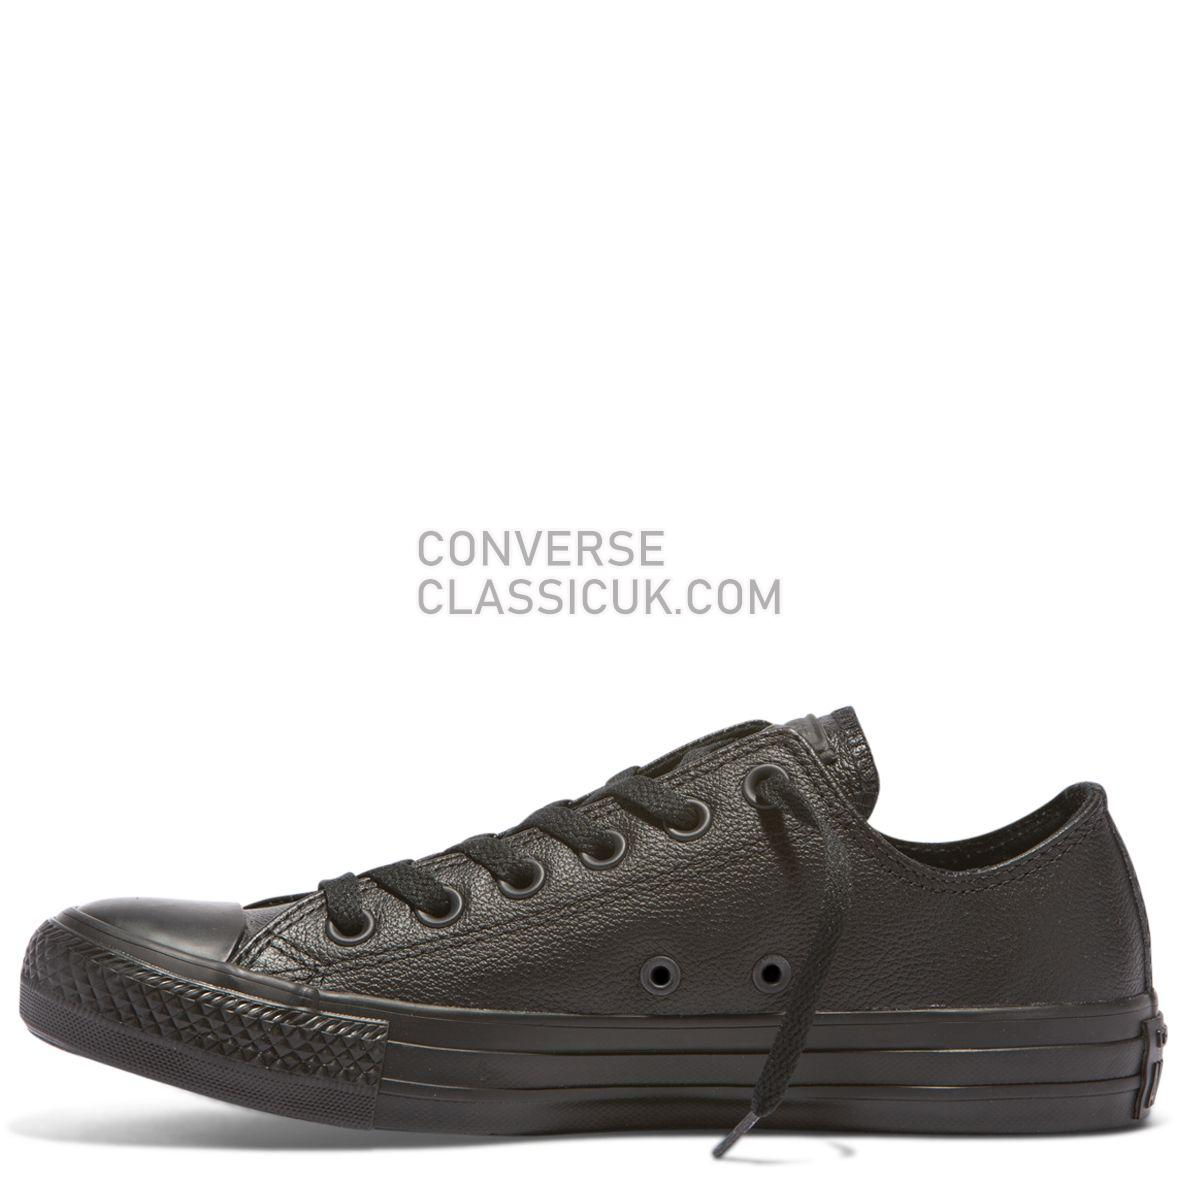 Converse Chuck Taylor All Star Leather Low Top Black Mono Mens Womens Unisex 135253 Black Mono Shoes